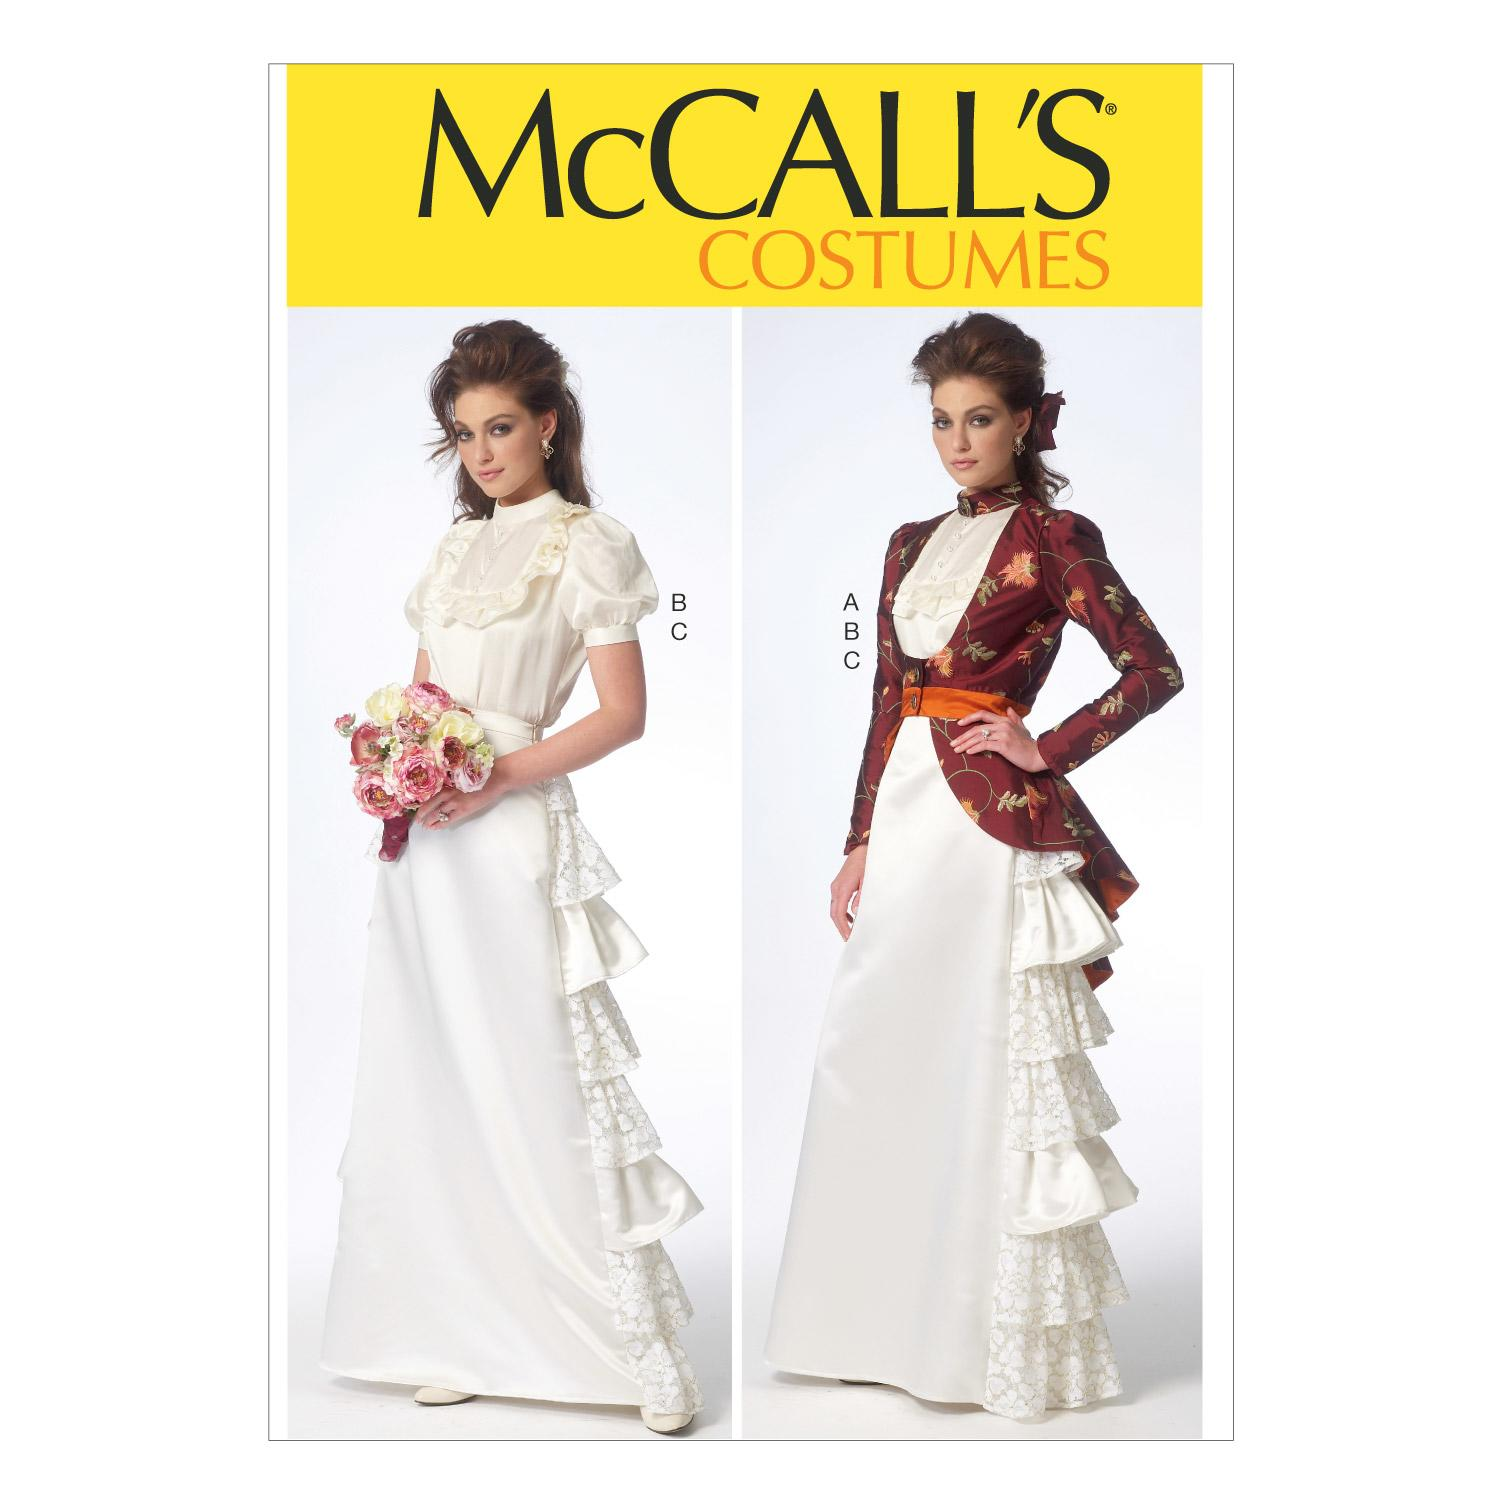 McCalls M7071 Bridal, Costumes, Jackets, Skirts, Bustles & Petticoats, Tops, Shirts & Tunics